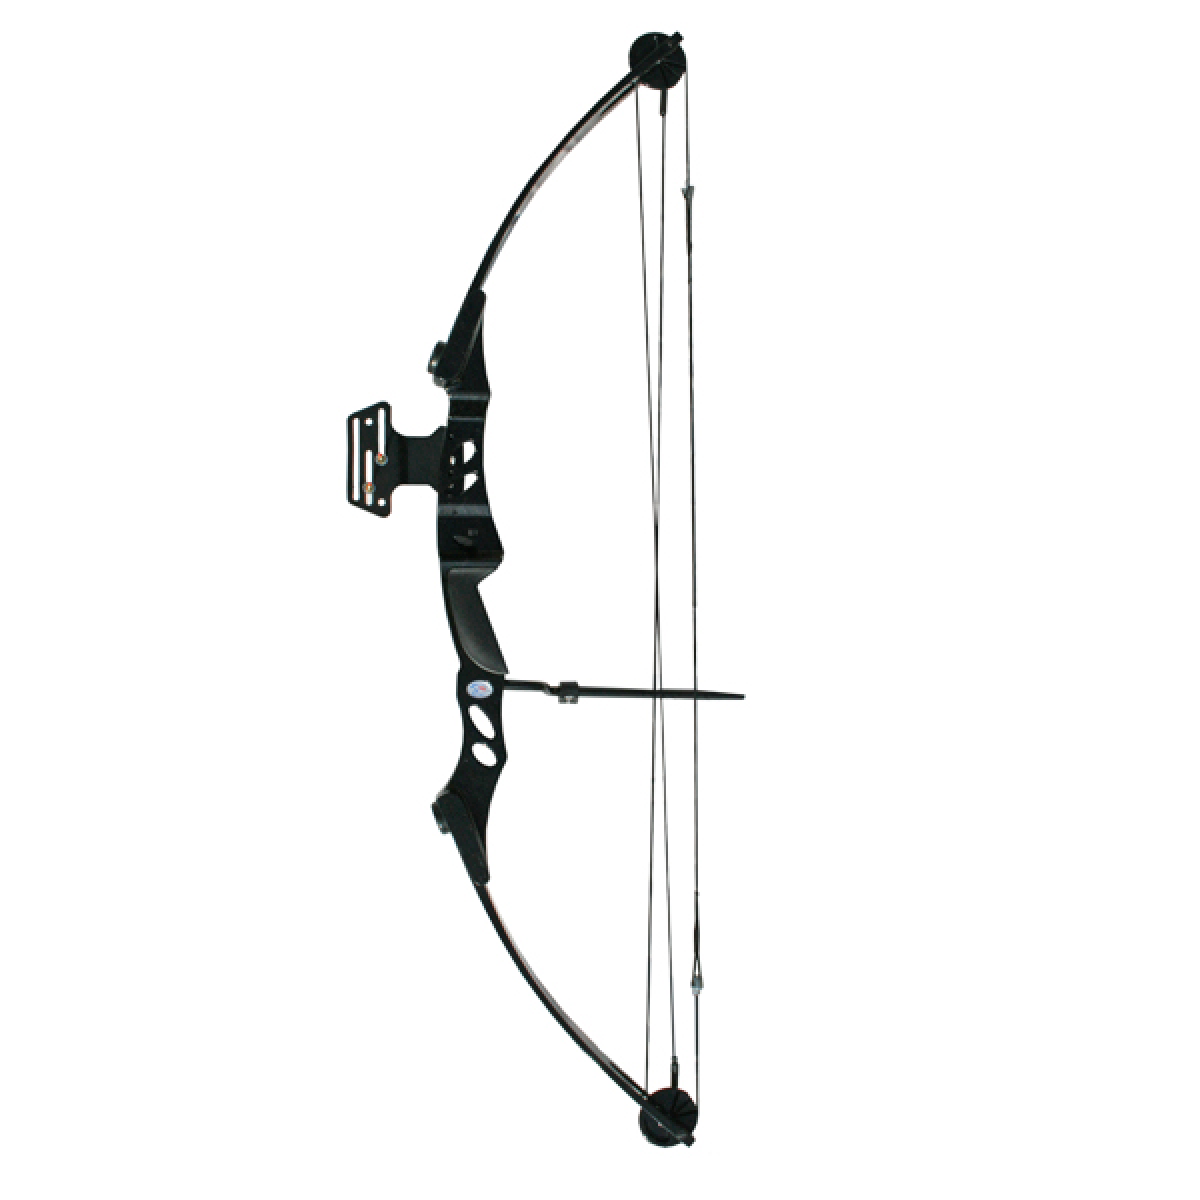 Archery 55lb Black Compound Bow - Compound Bow And Arrow PNG